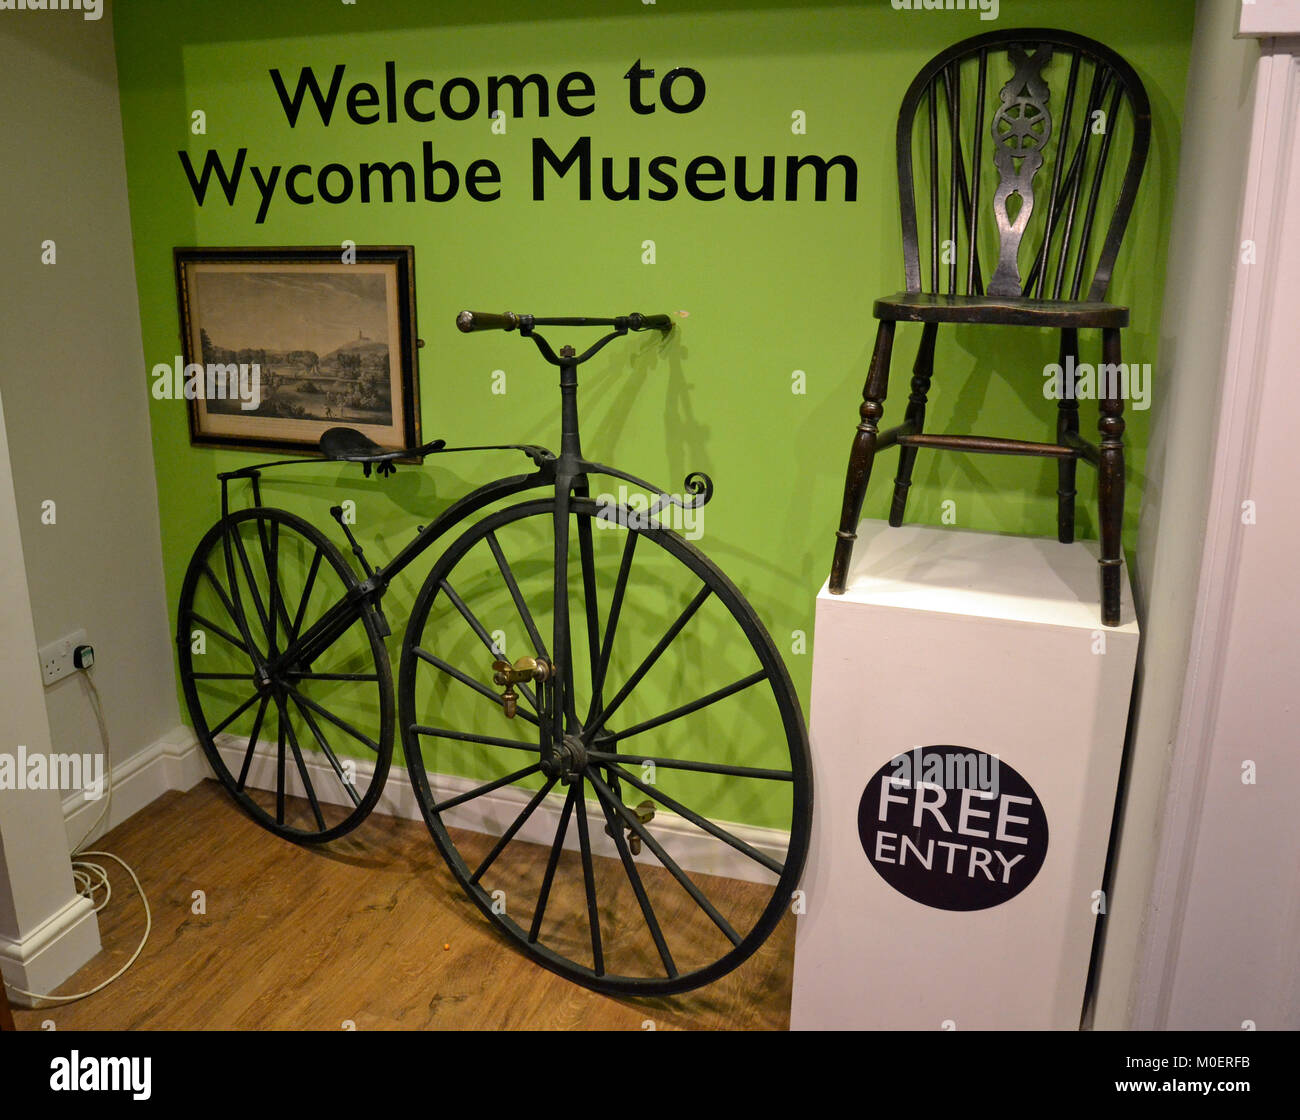 The entrance hall at Wycombe Museum - Stock Image